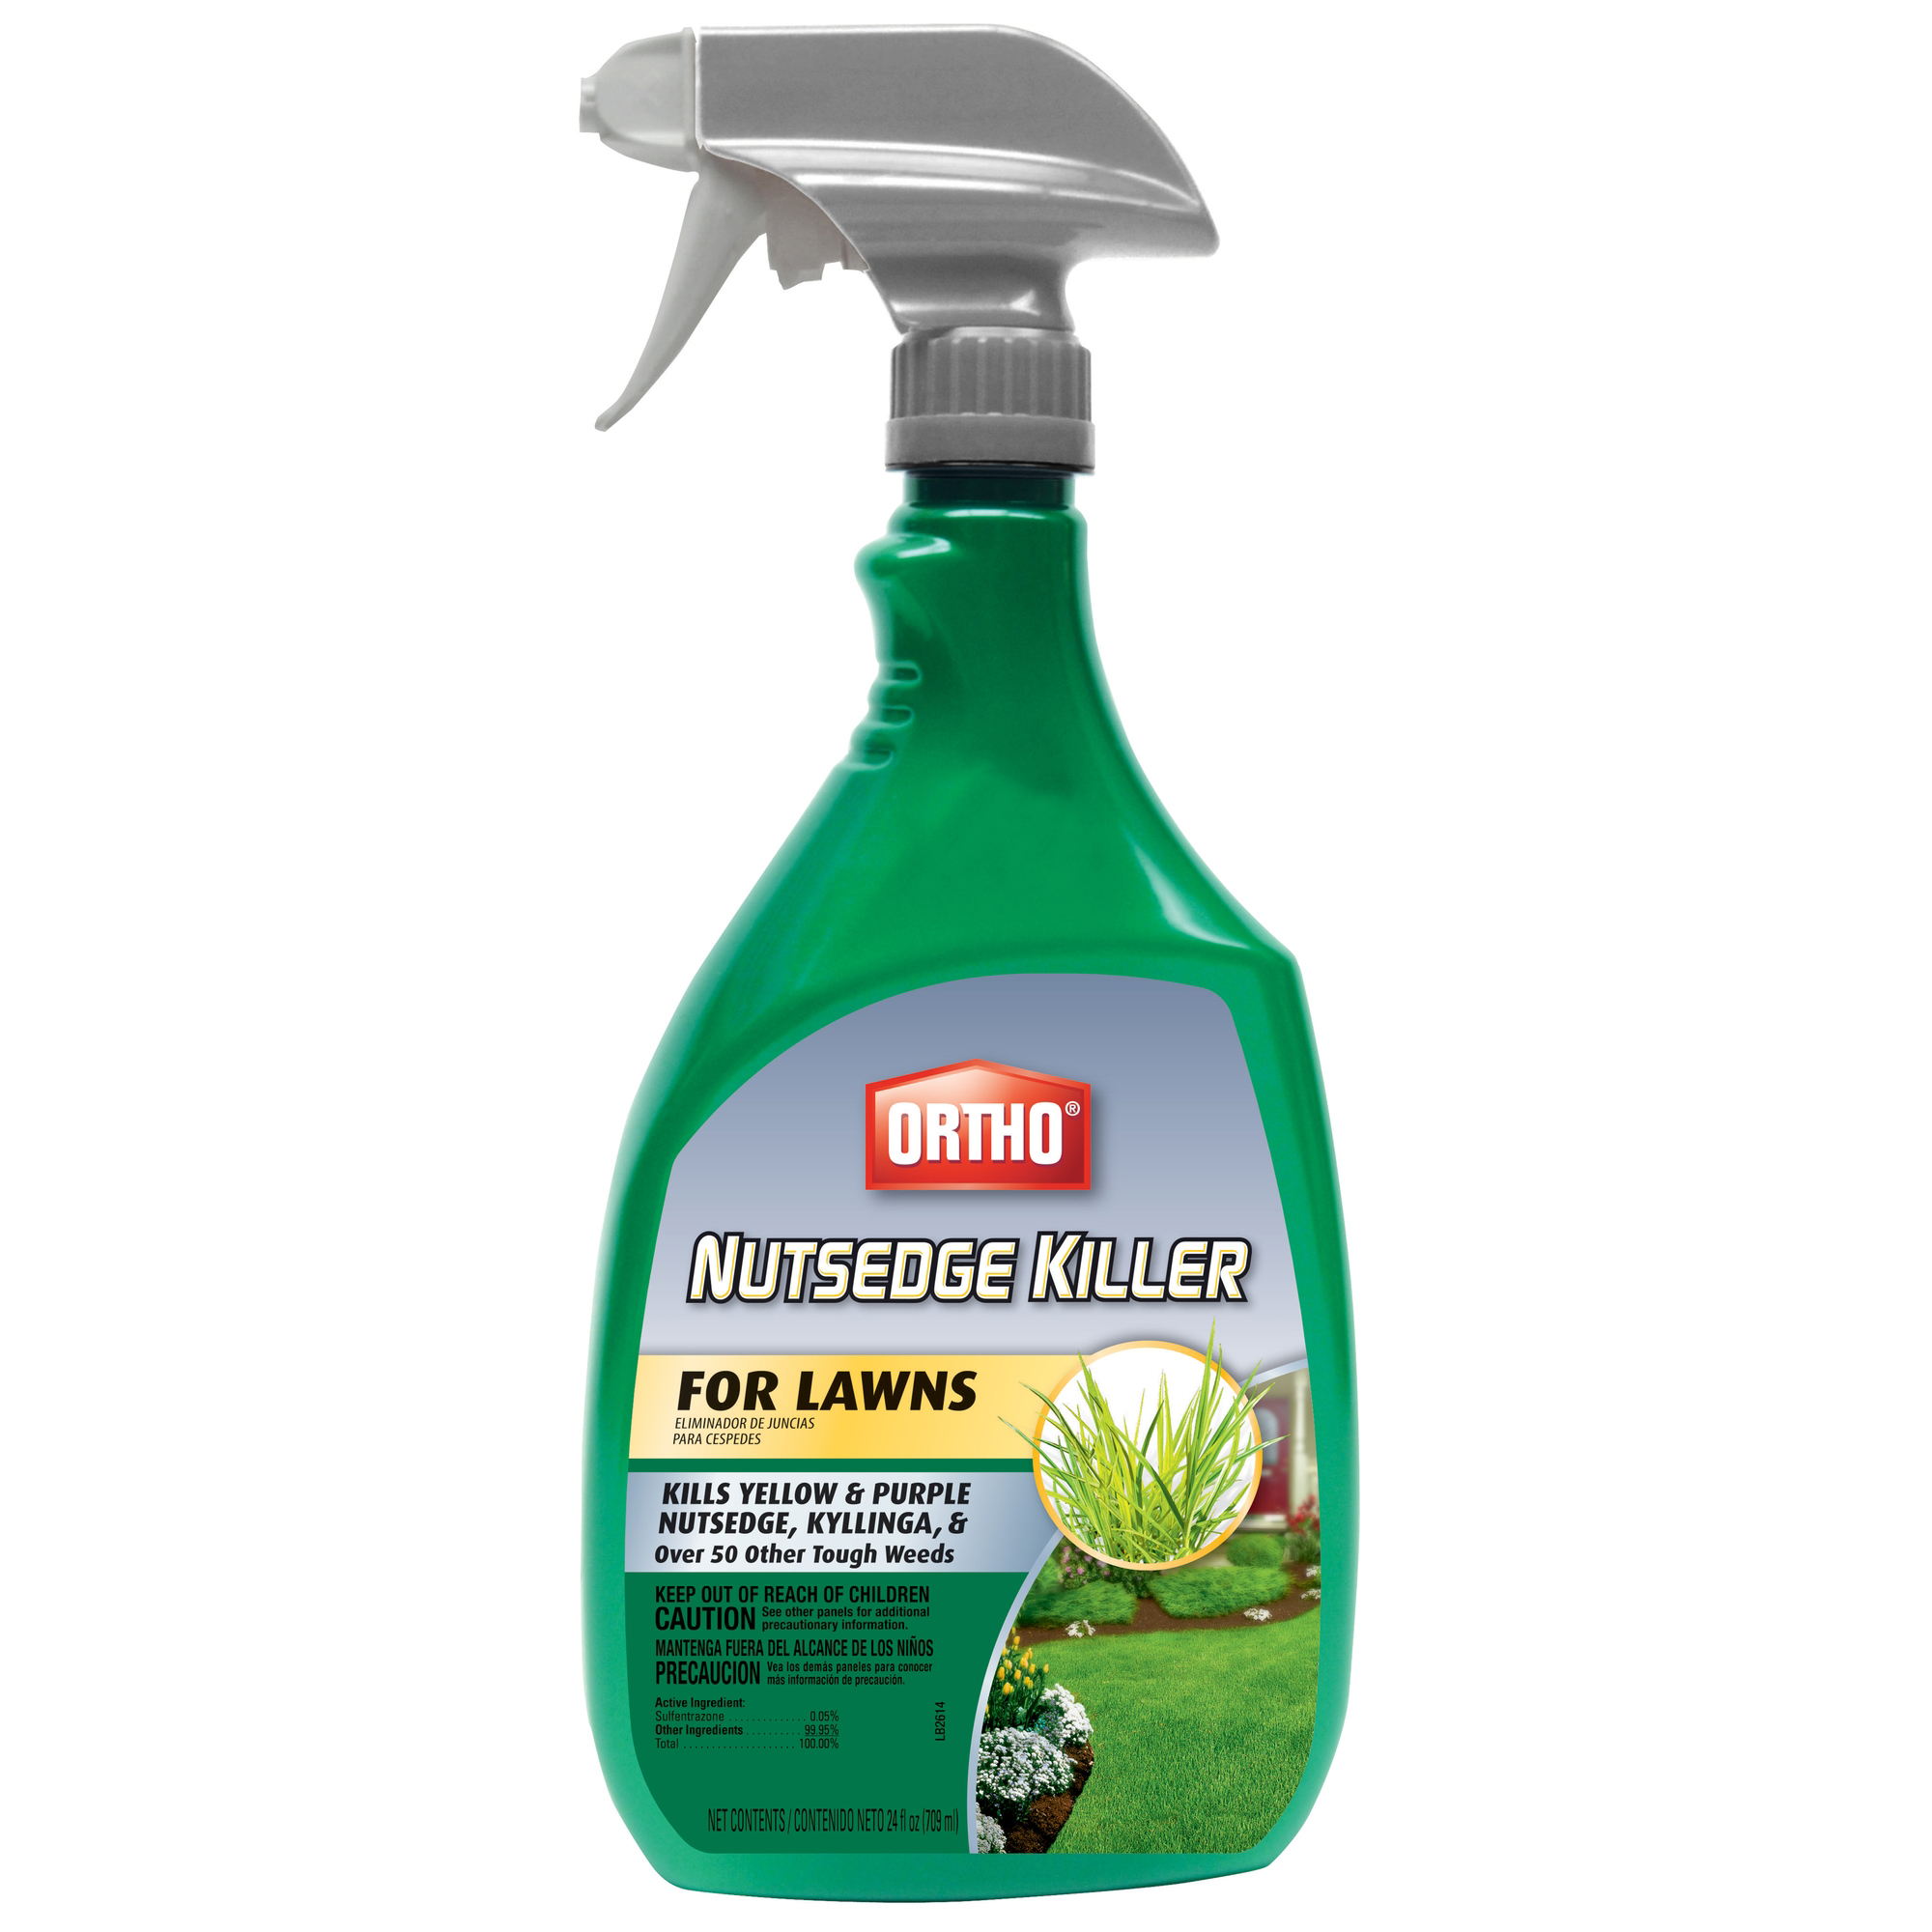 Ortho Nutsedge Killer for Lawns Ready-to-Use, 24 oz